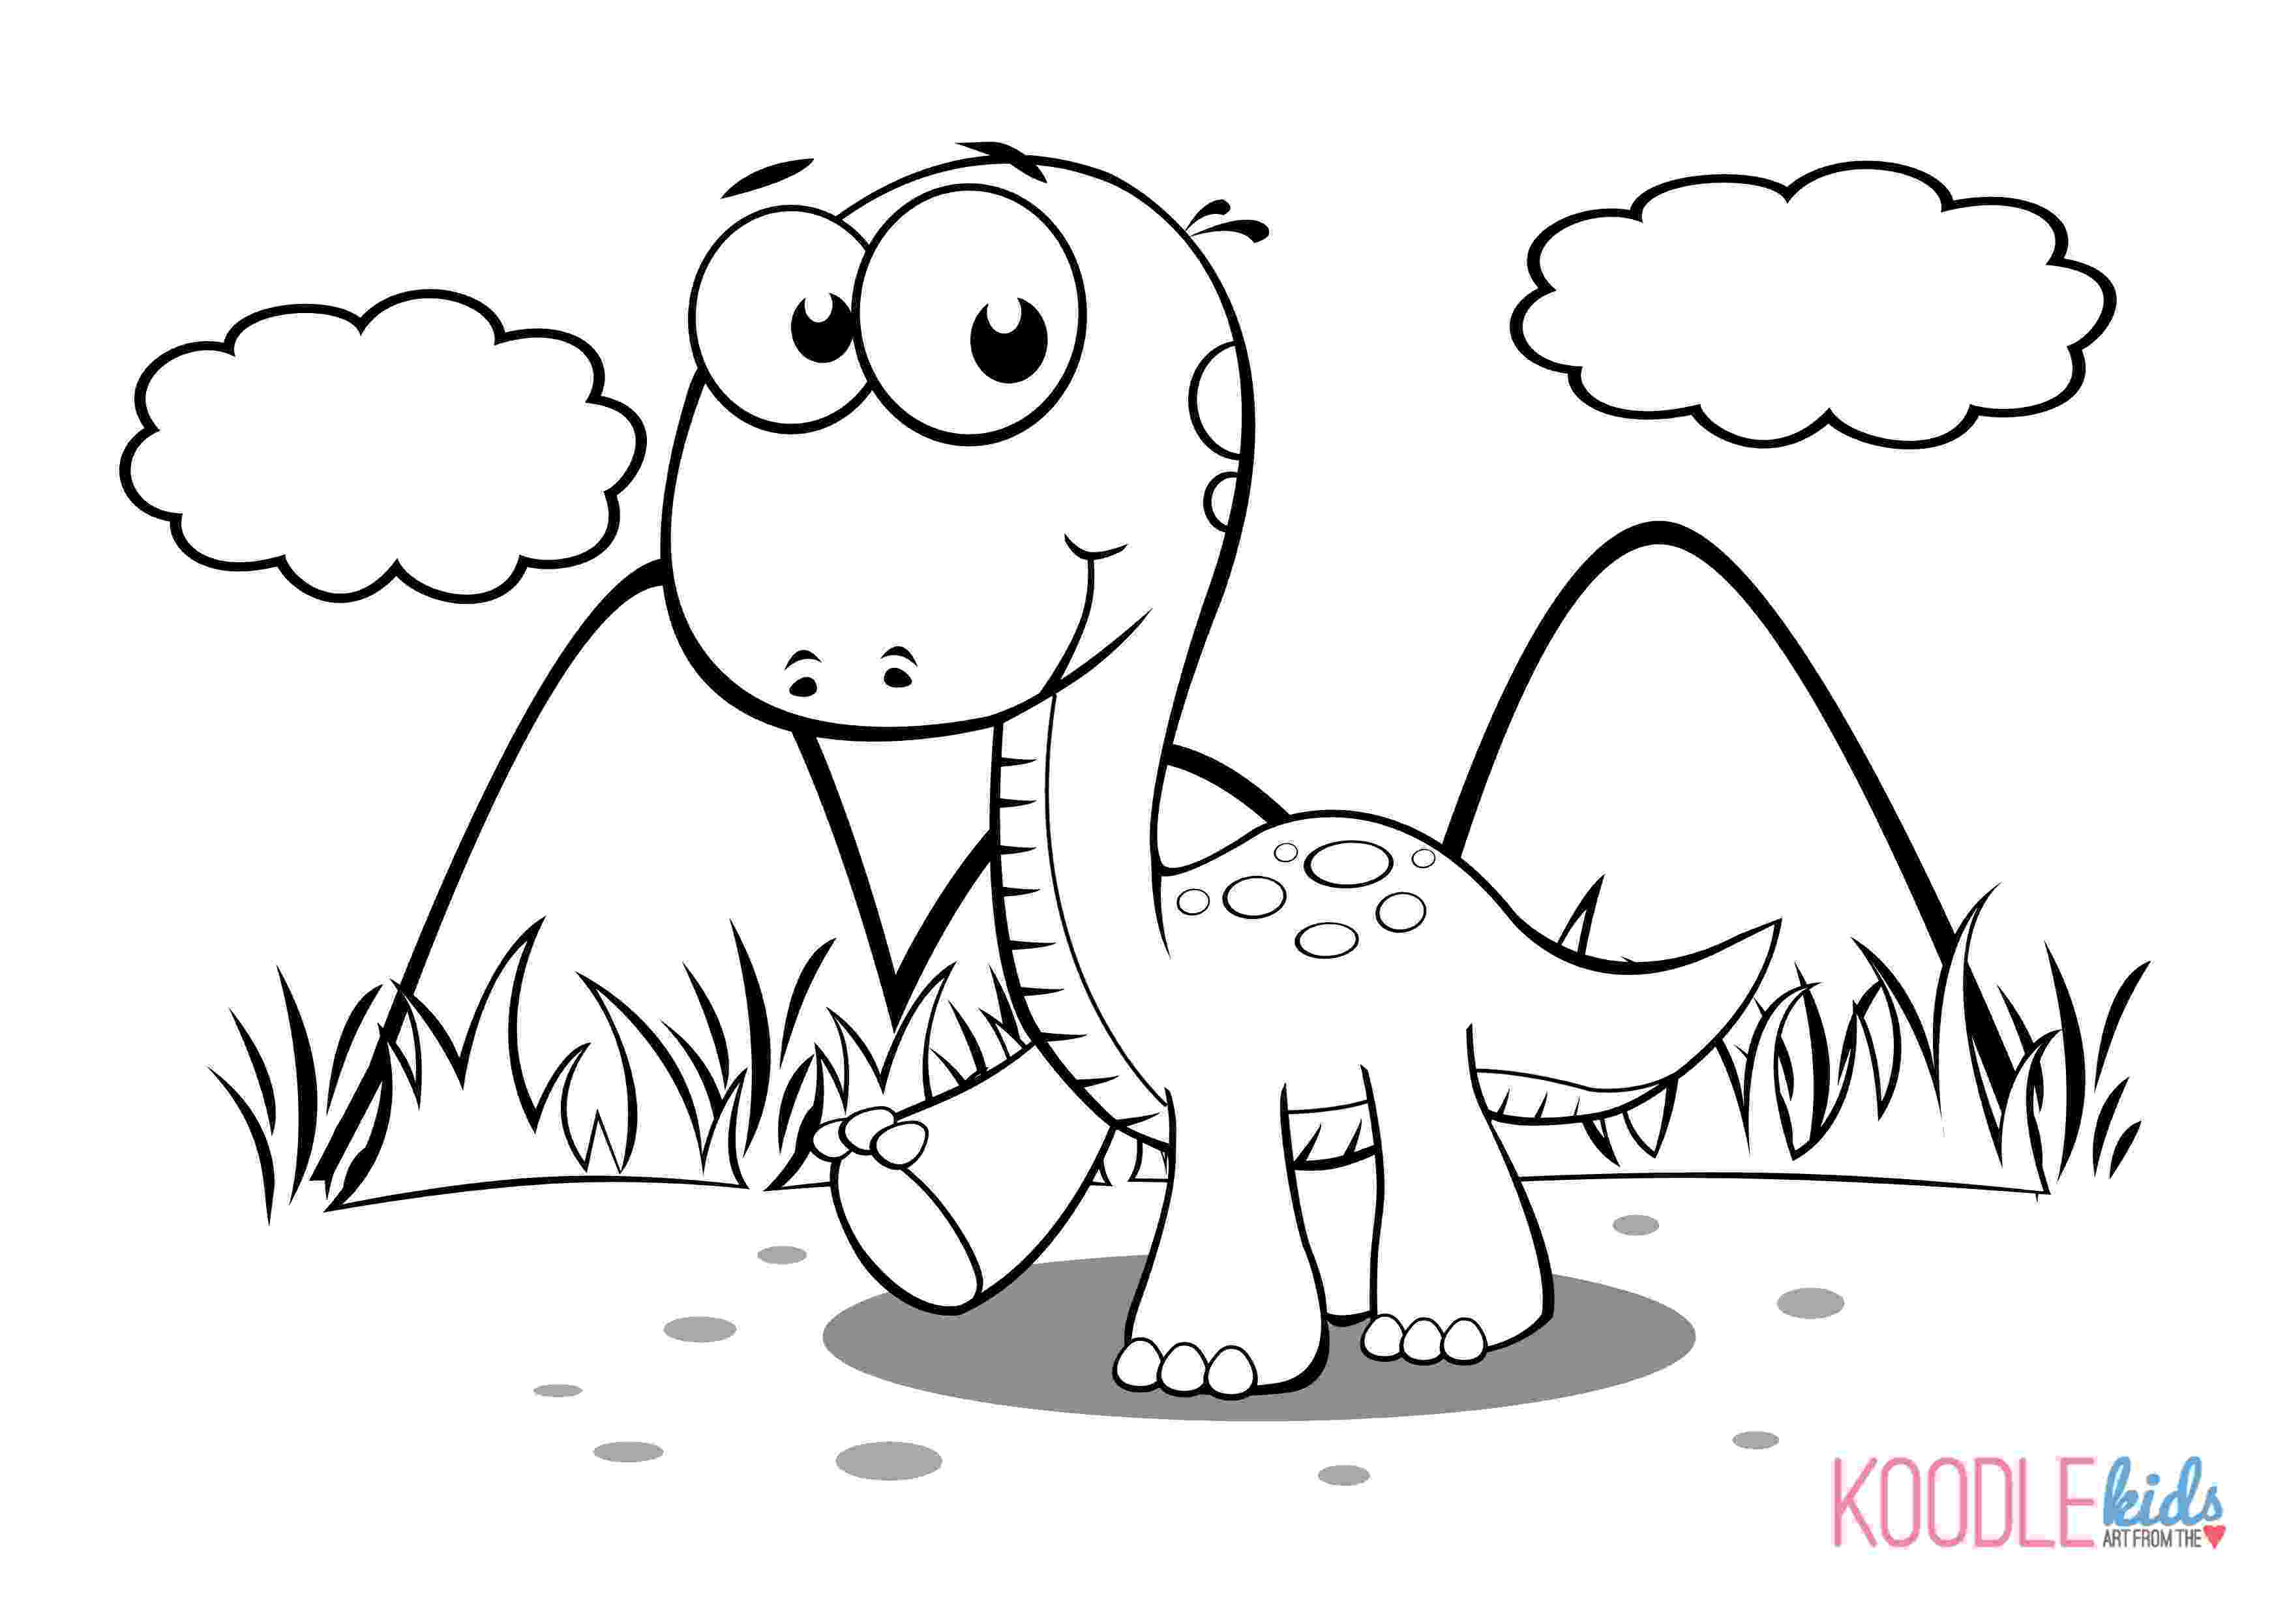 dino colouring pages online 25 dinosaur coloring pages free coloring pages download colouring pages online dino